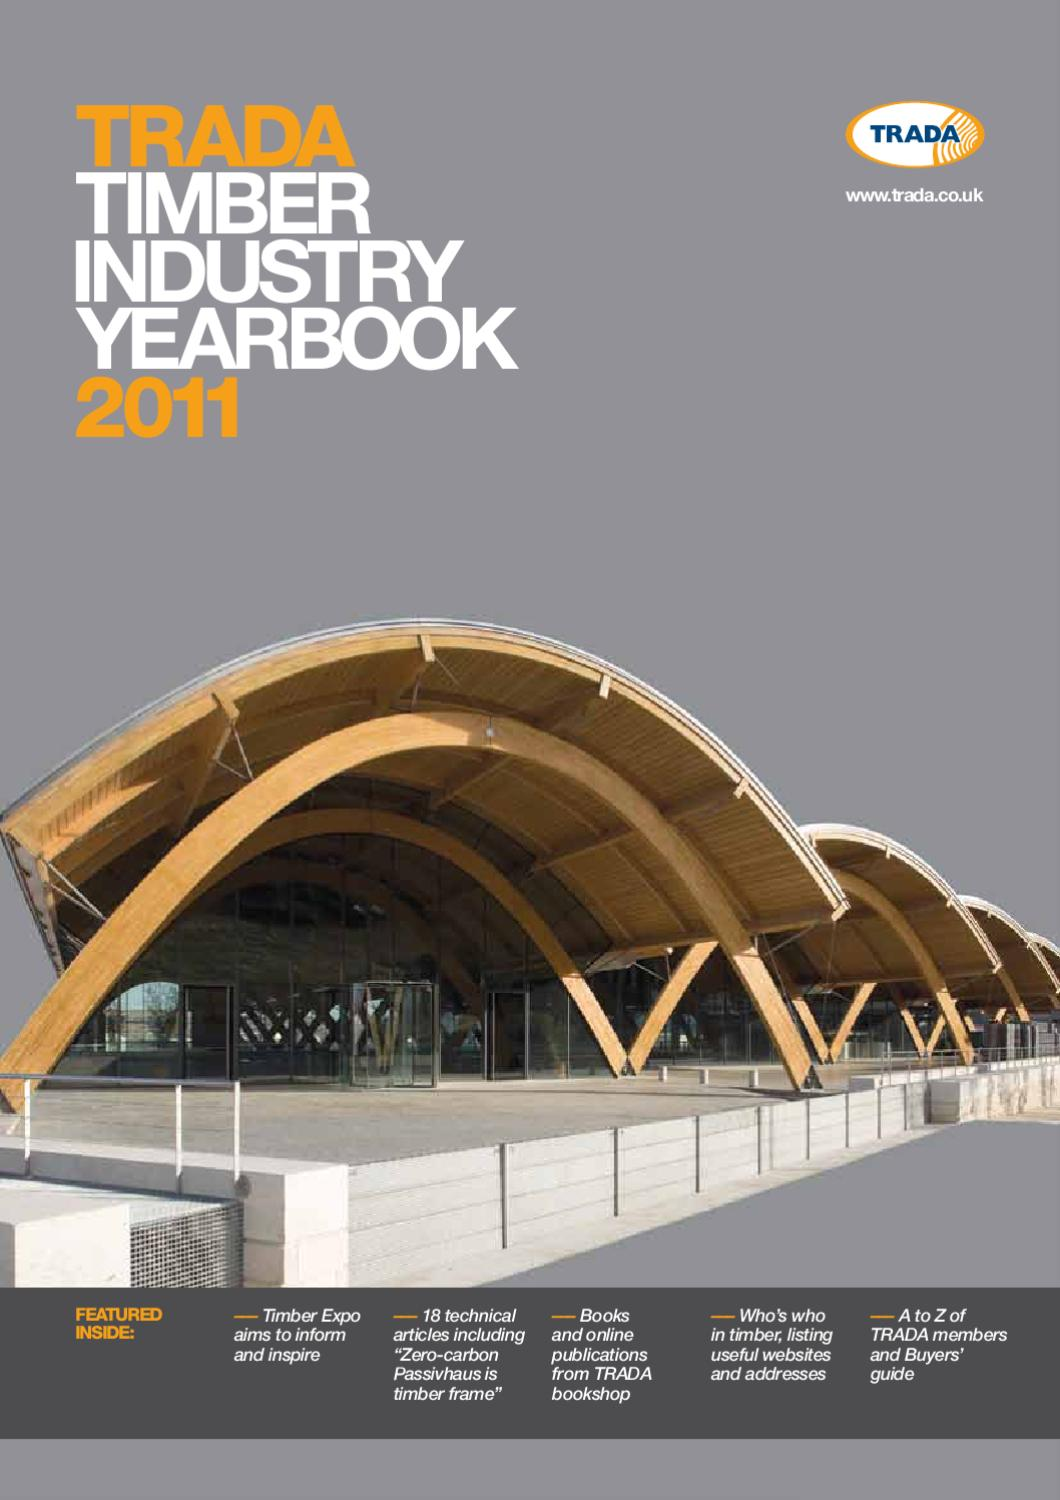 Trada timber industry yearbook 2011 by open box media trada timber industry yearbook 2011 by open box media communications issuu malvernweather Gallery